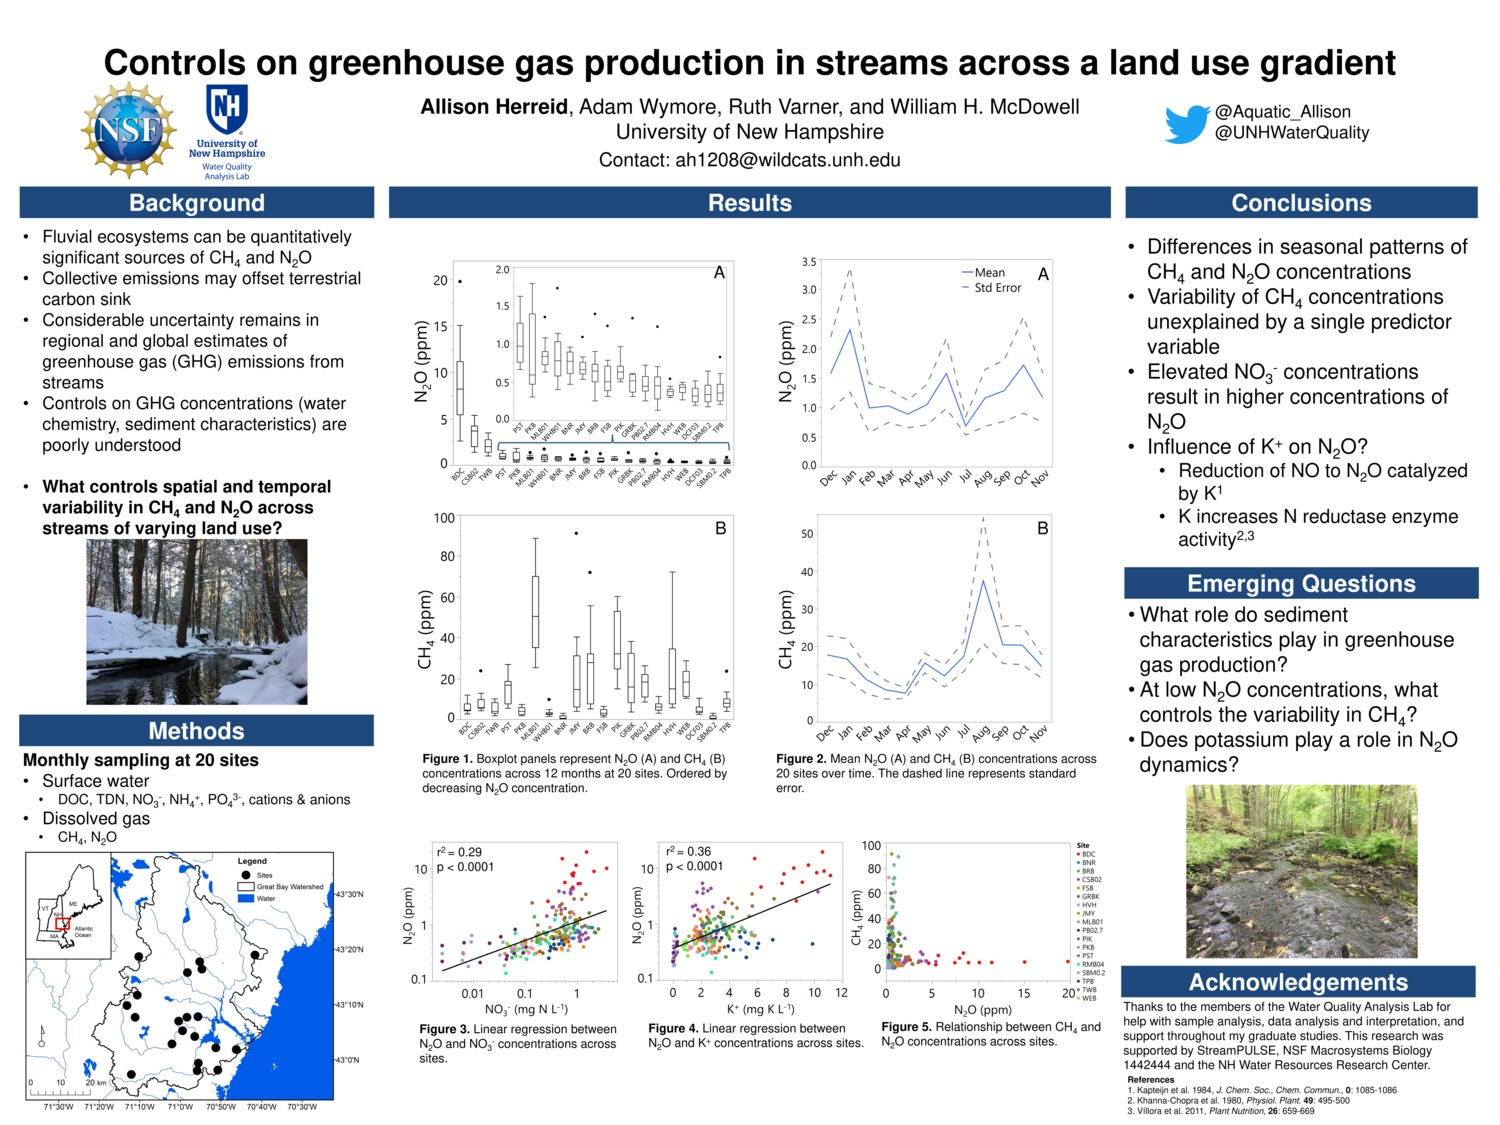 Controls On Greenhouse Gas Production In Streams Across A Land Use Gradient by ah1208